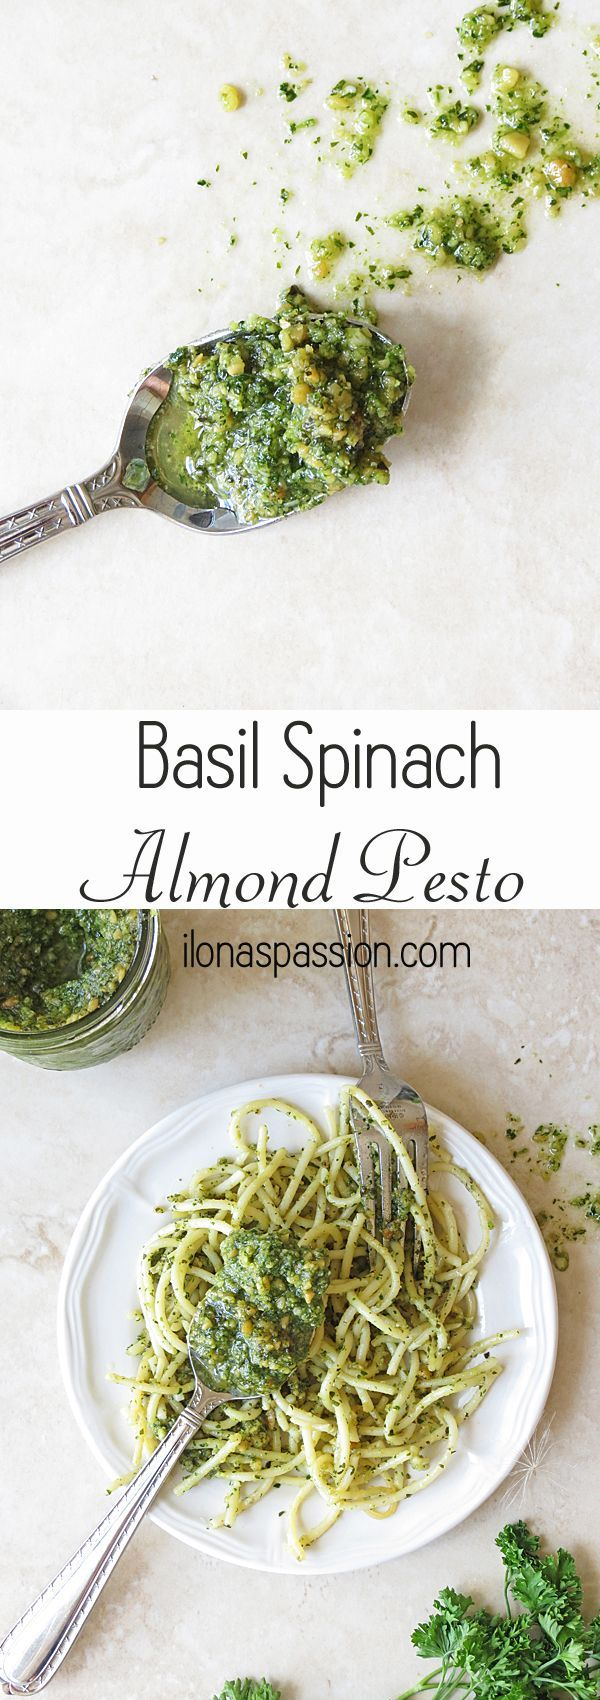 Basil Spinach Almond Pesto by http://ilonaspassion.com #pesto #basil #spinach #recipe